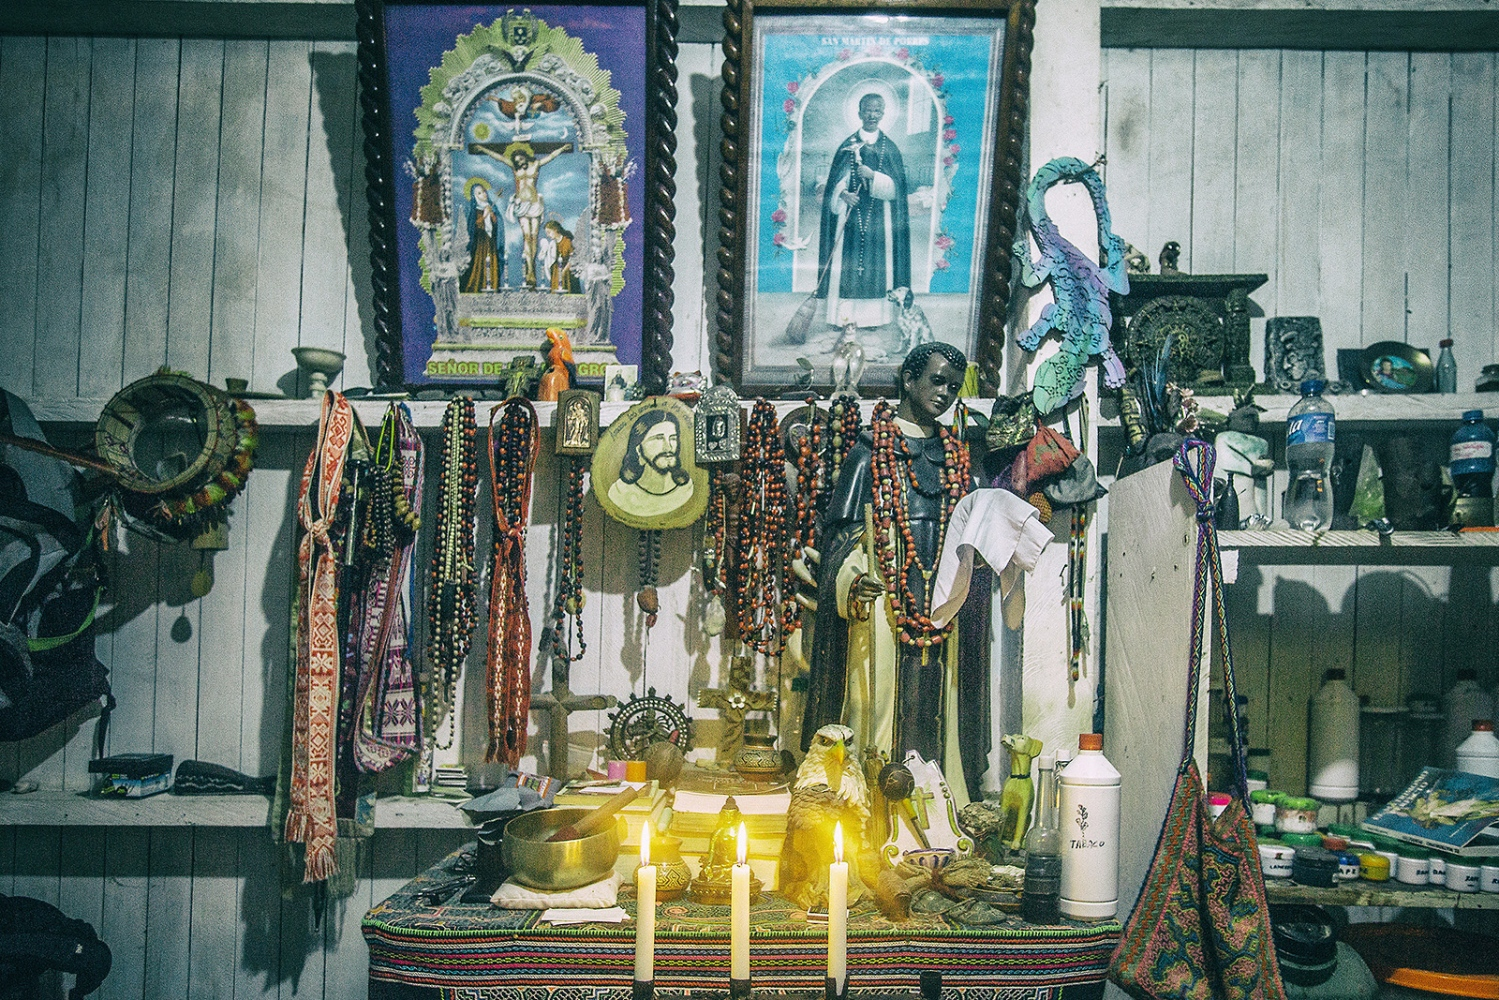 The shaman room. They are devoted to Saints from different traditions